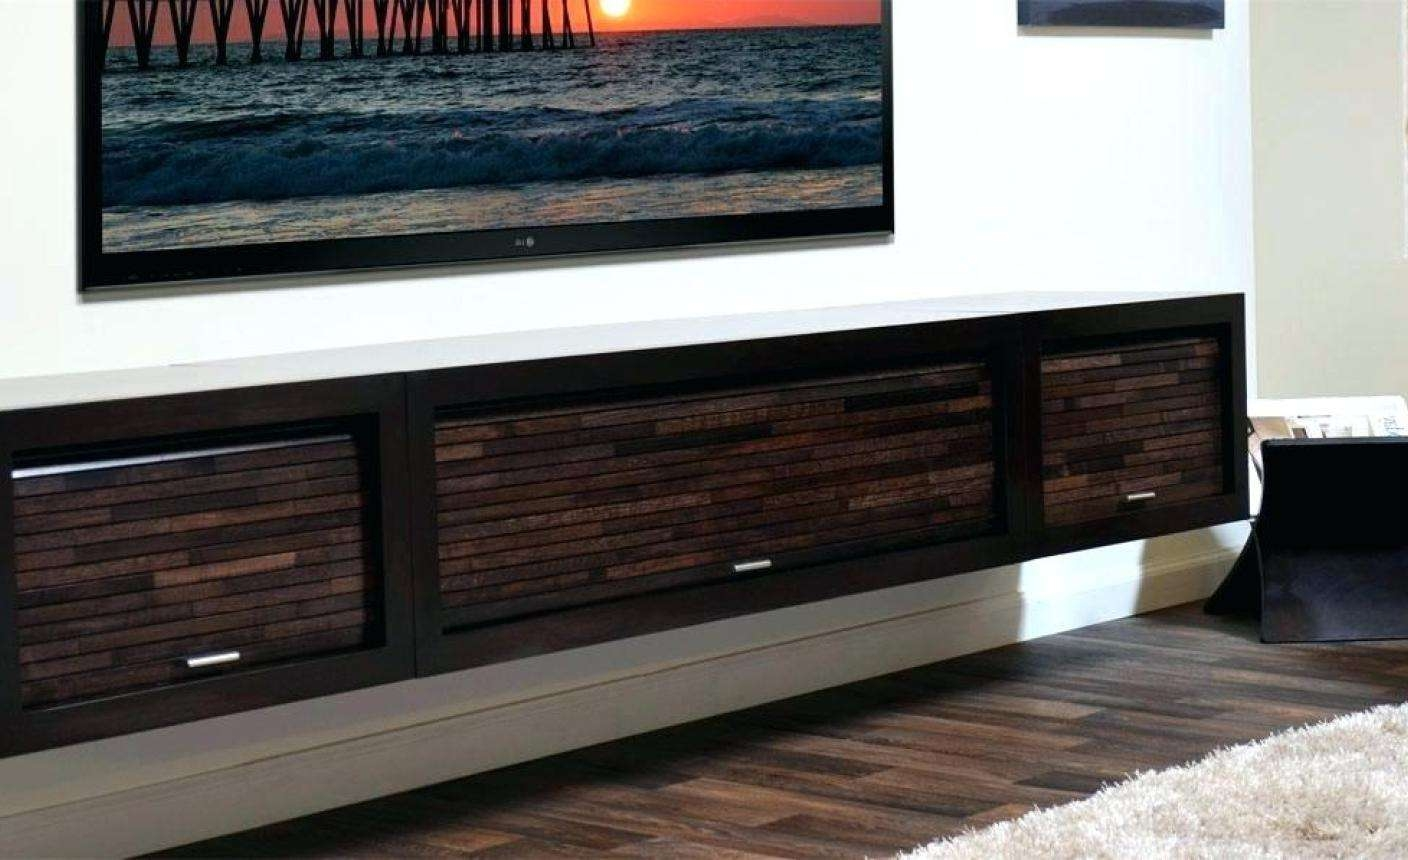 Tv : Upright Tv Stands Riveting Tall Upright Tv Stands' Gripping Throughout Upright Tv Stands (View 14 of 15)